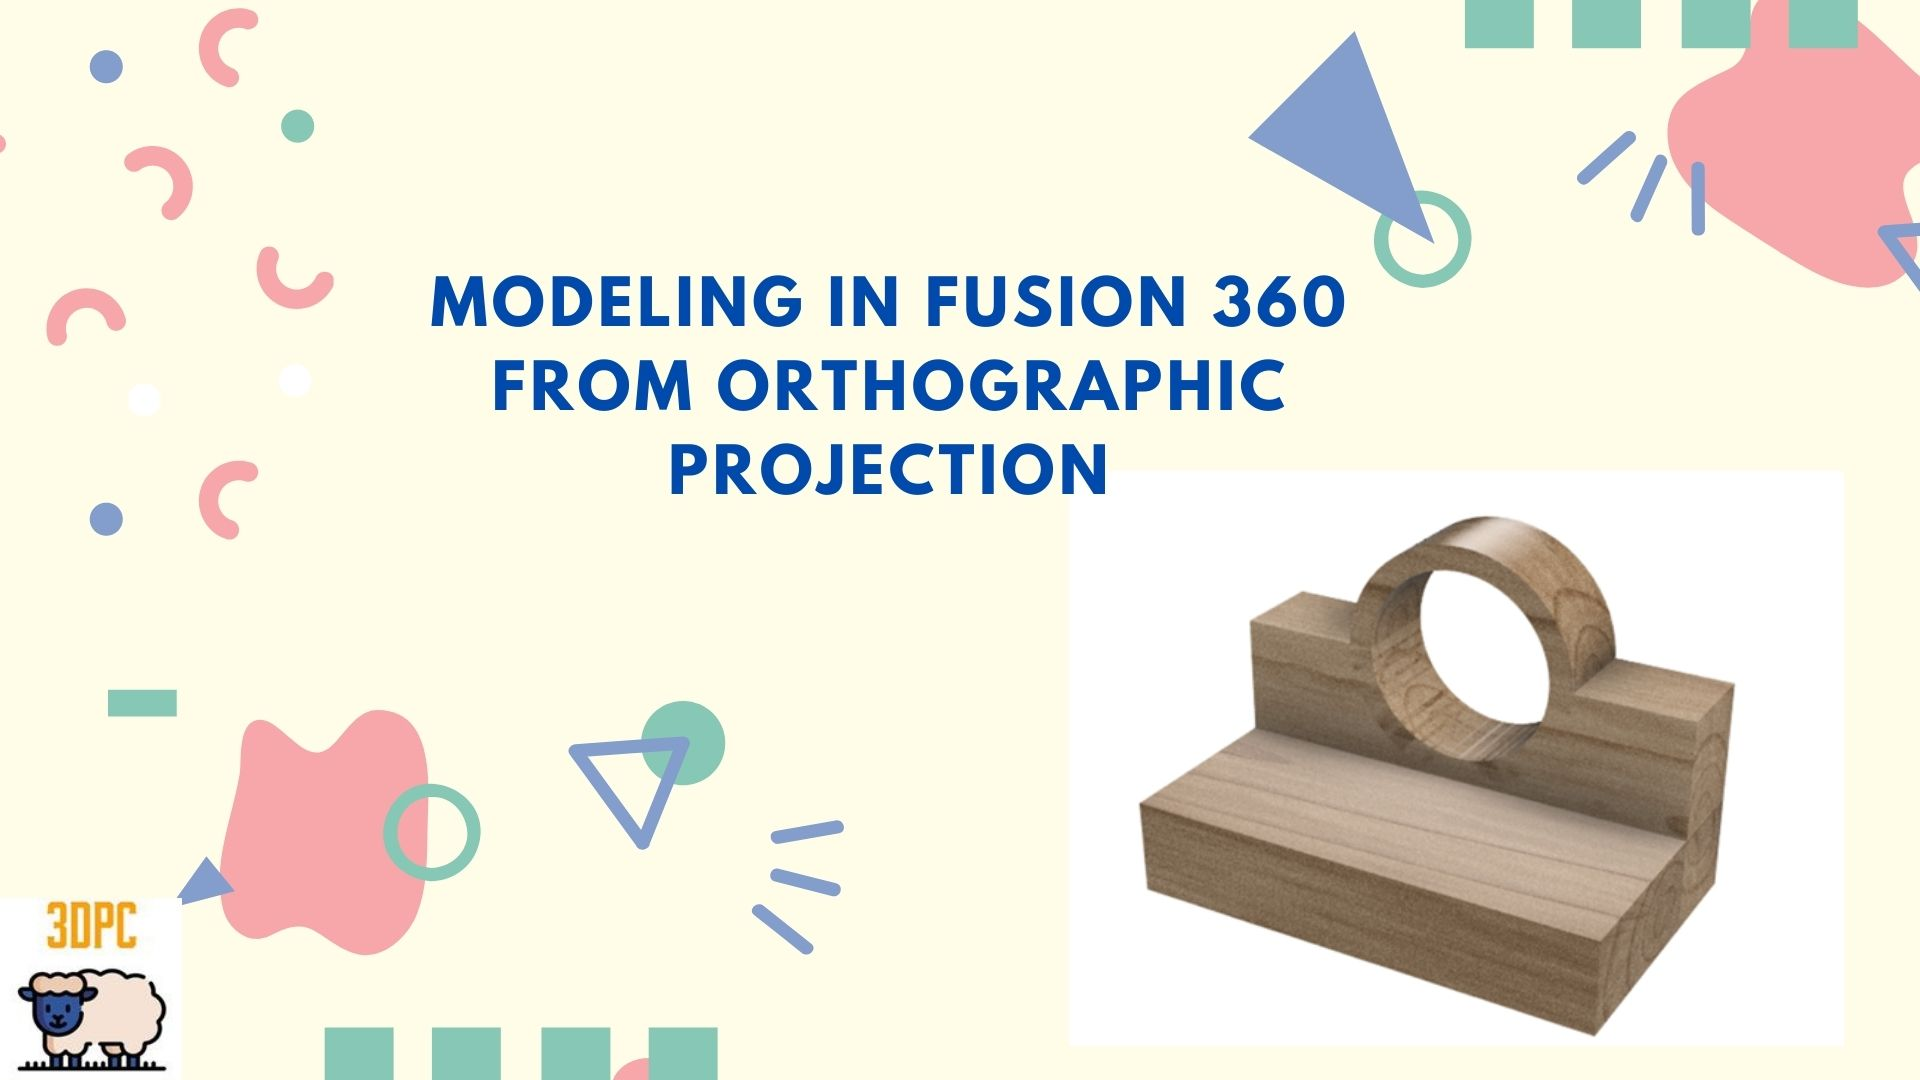 modeling in fusion 360 using orthographic projection